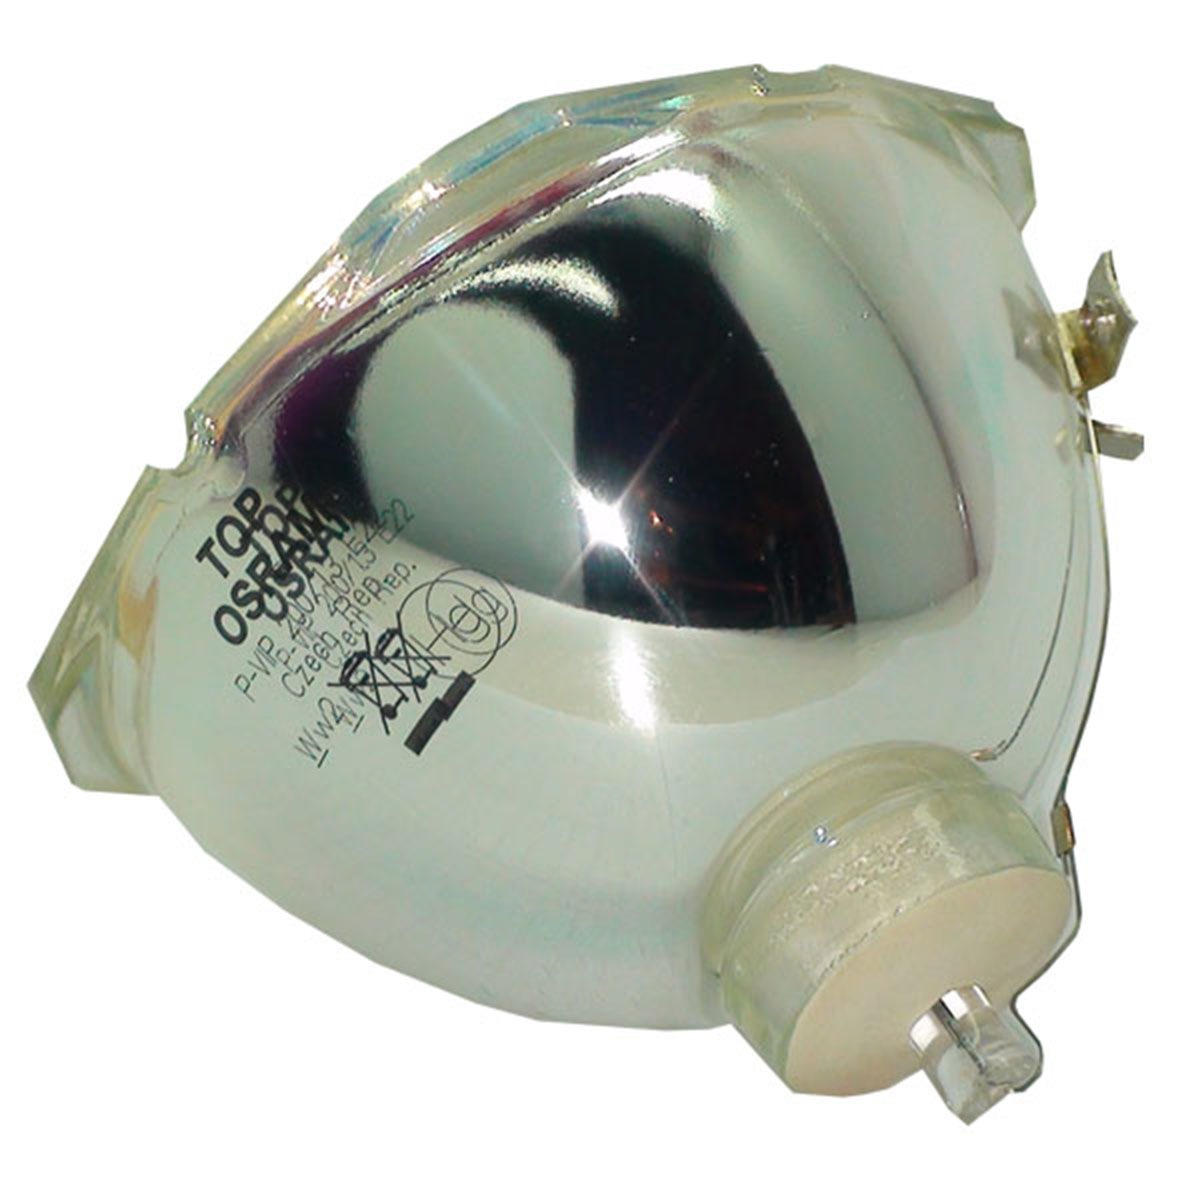 Lutema Platinum for Delta AV-3620 Projector Lamp (Bulb Only) - image 4 of 5